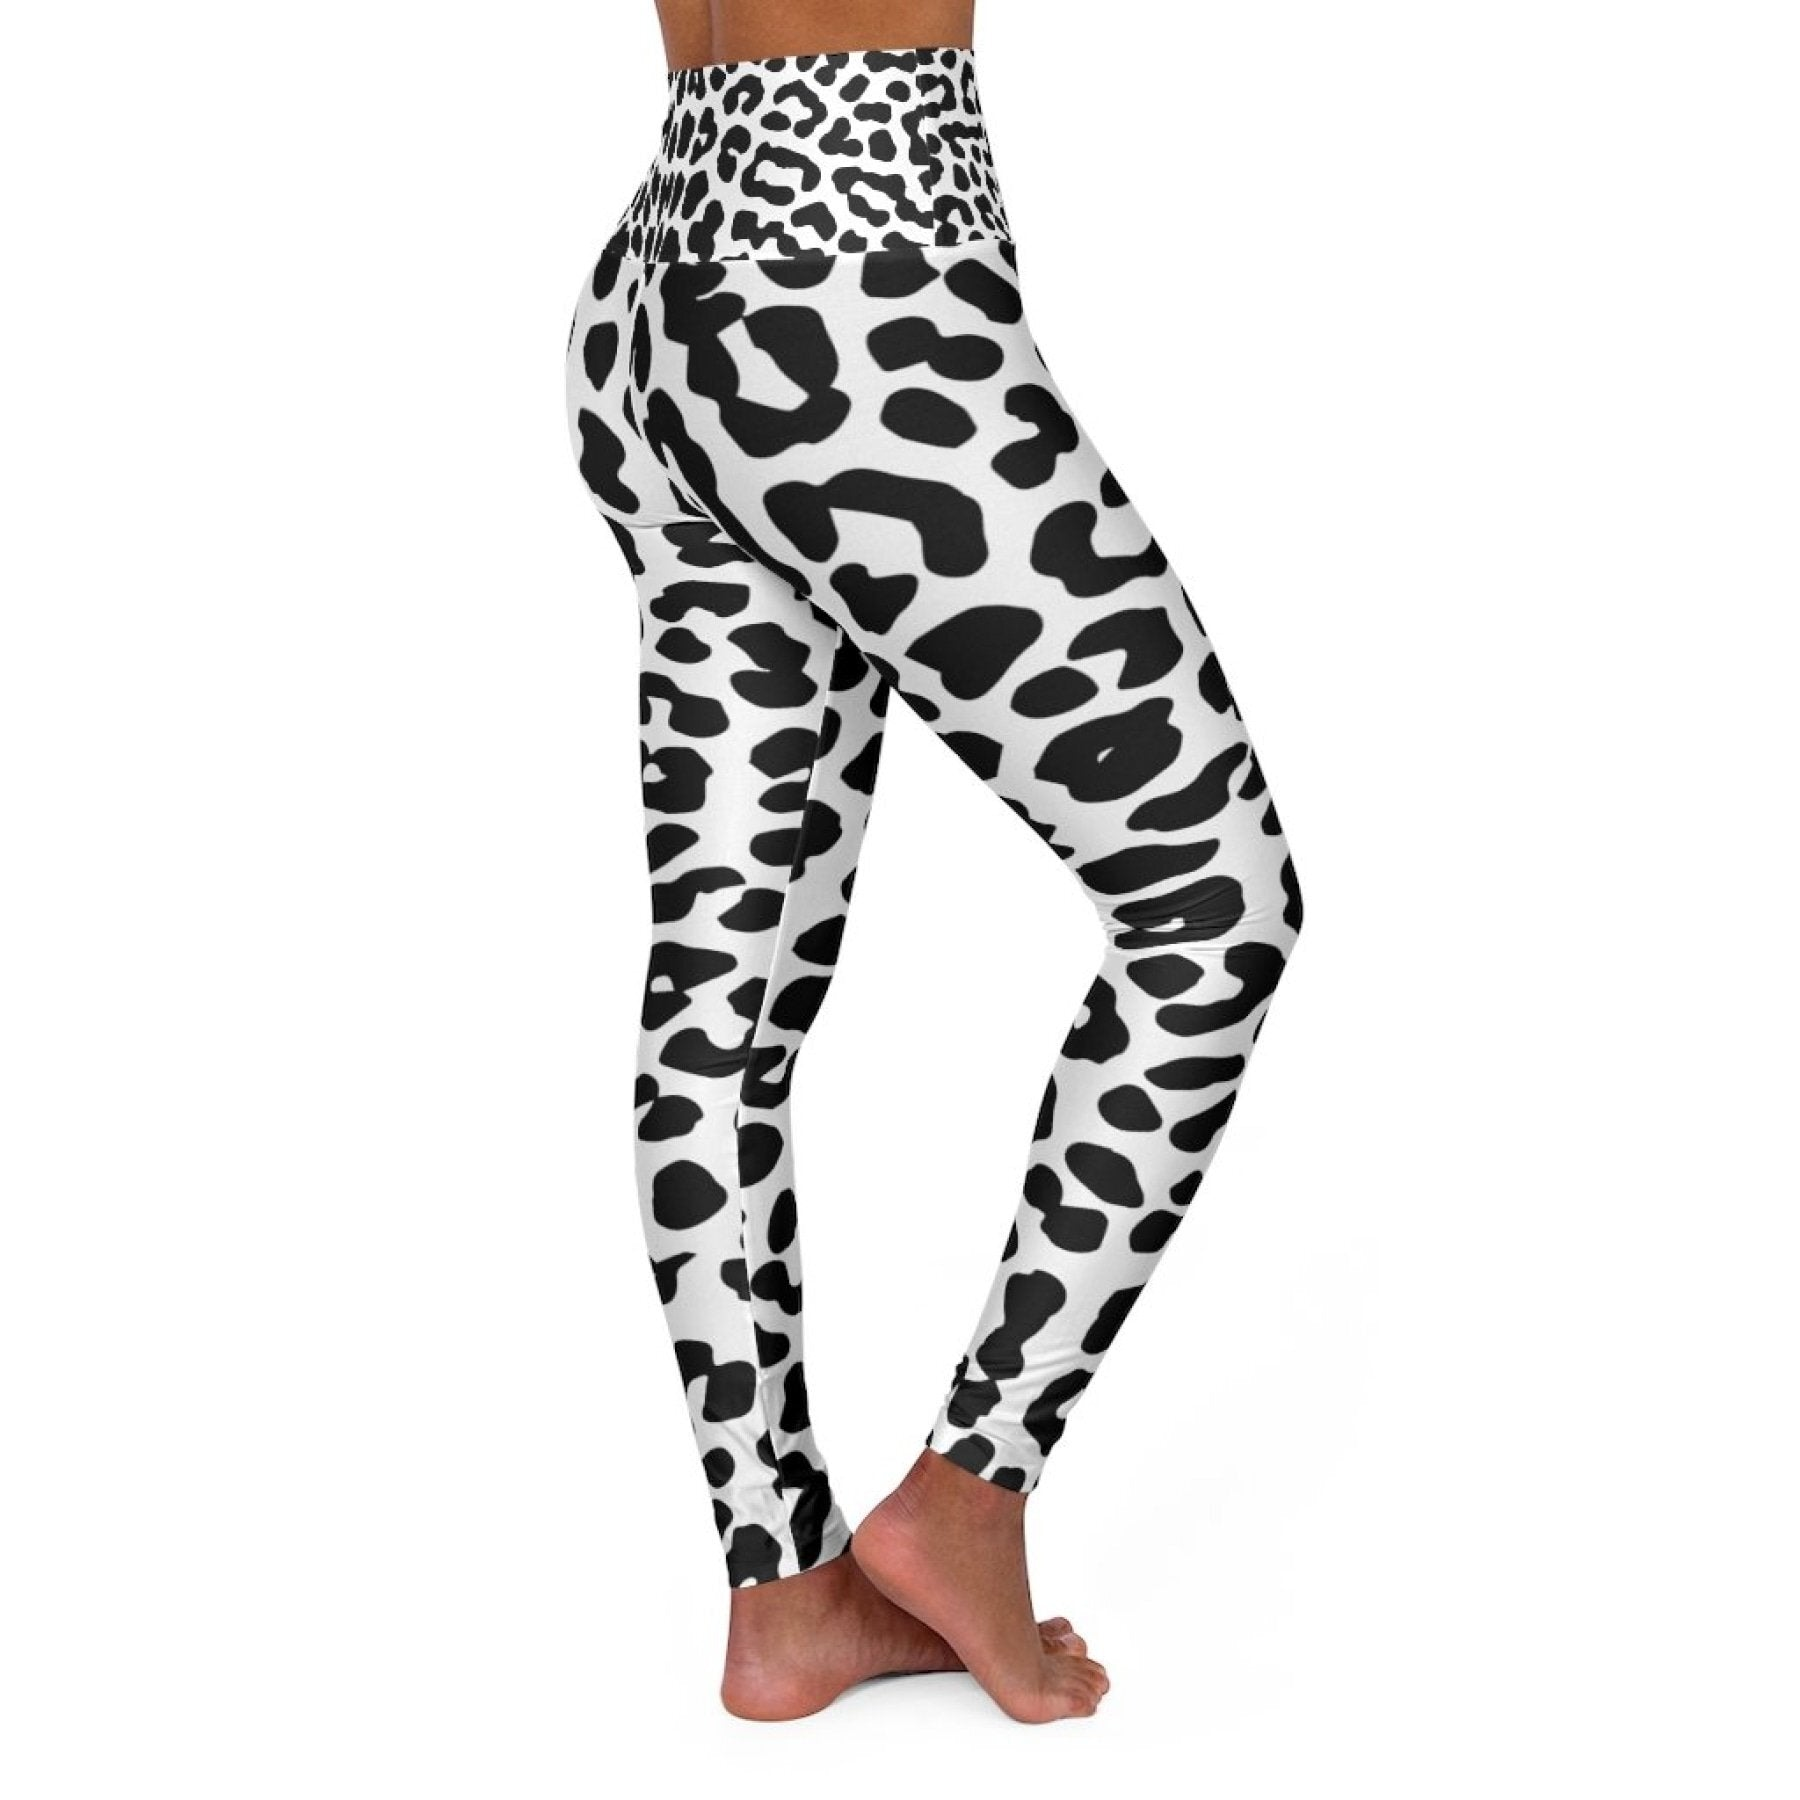 High Waisted Yoga Leggings, Black and White Leopard Style Pants